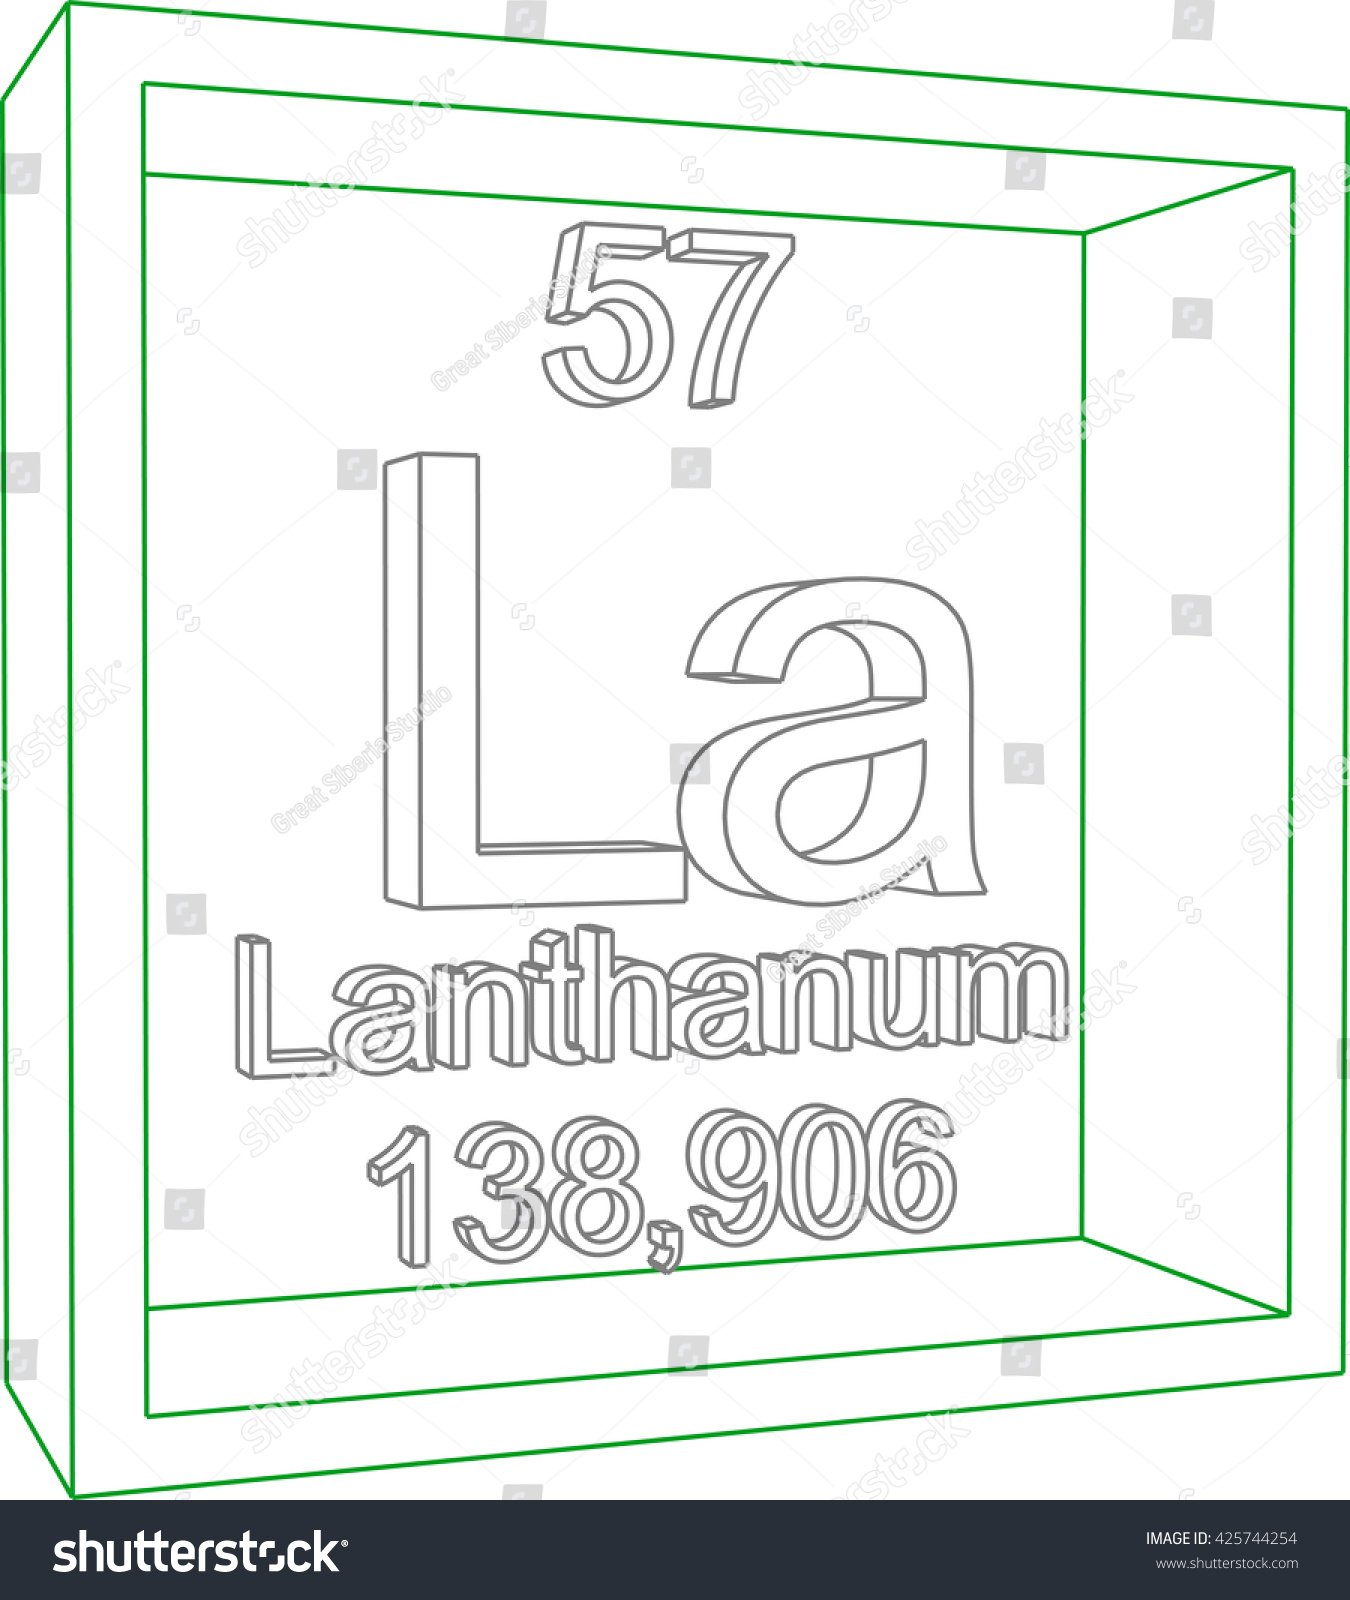 Periodic table elements lanthanum stock vector 425744254 periodic table of elements lanthanum gamestrikefo Image collections